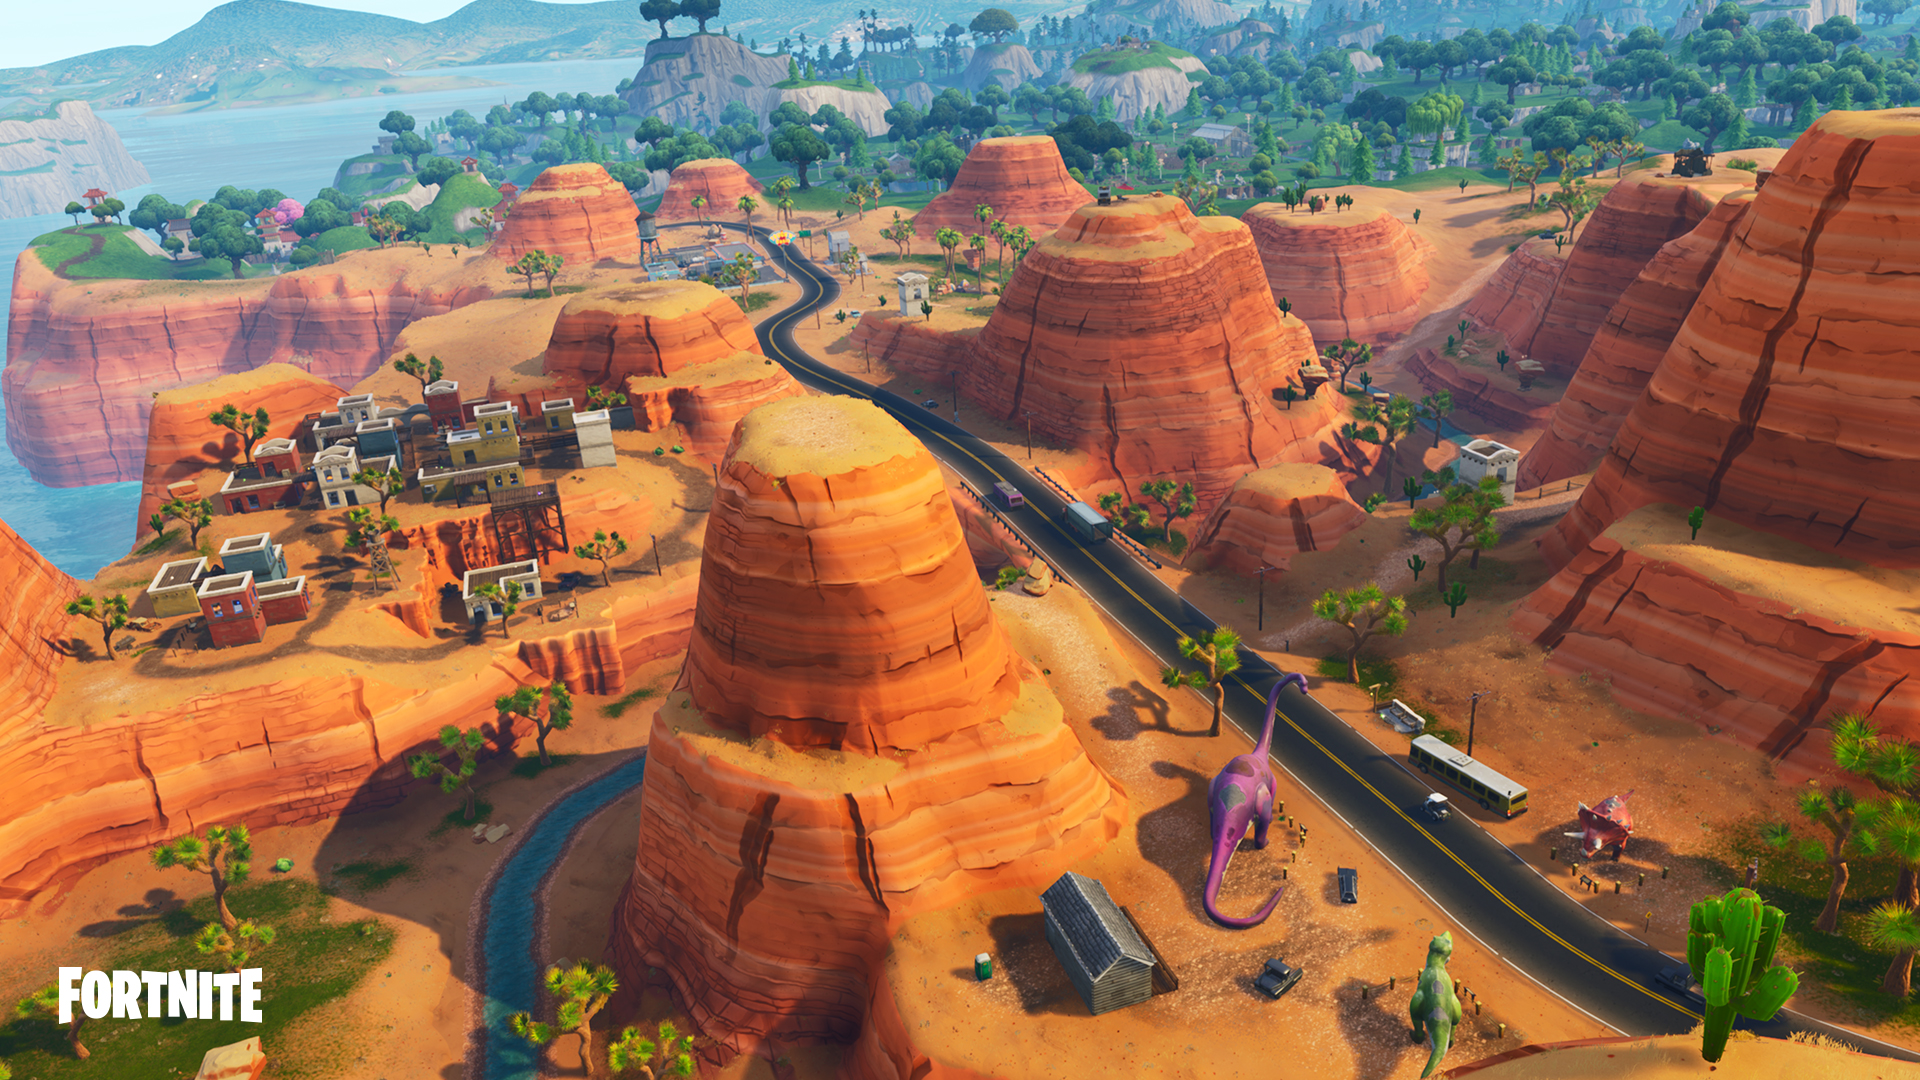 Fortnite Season 5 Map Update